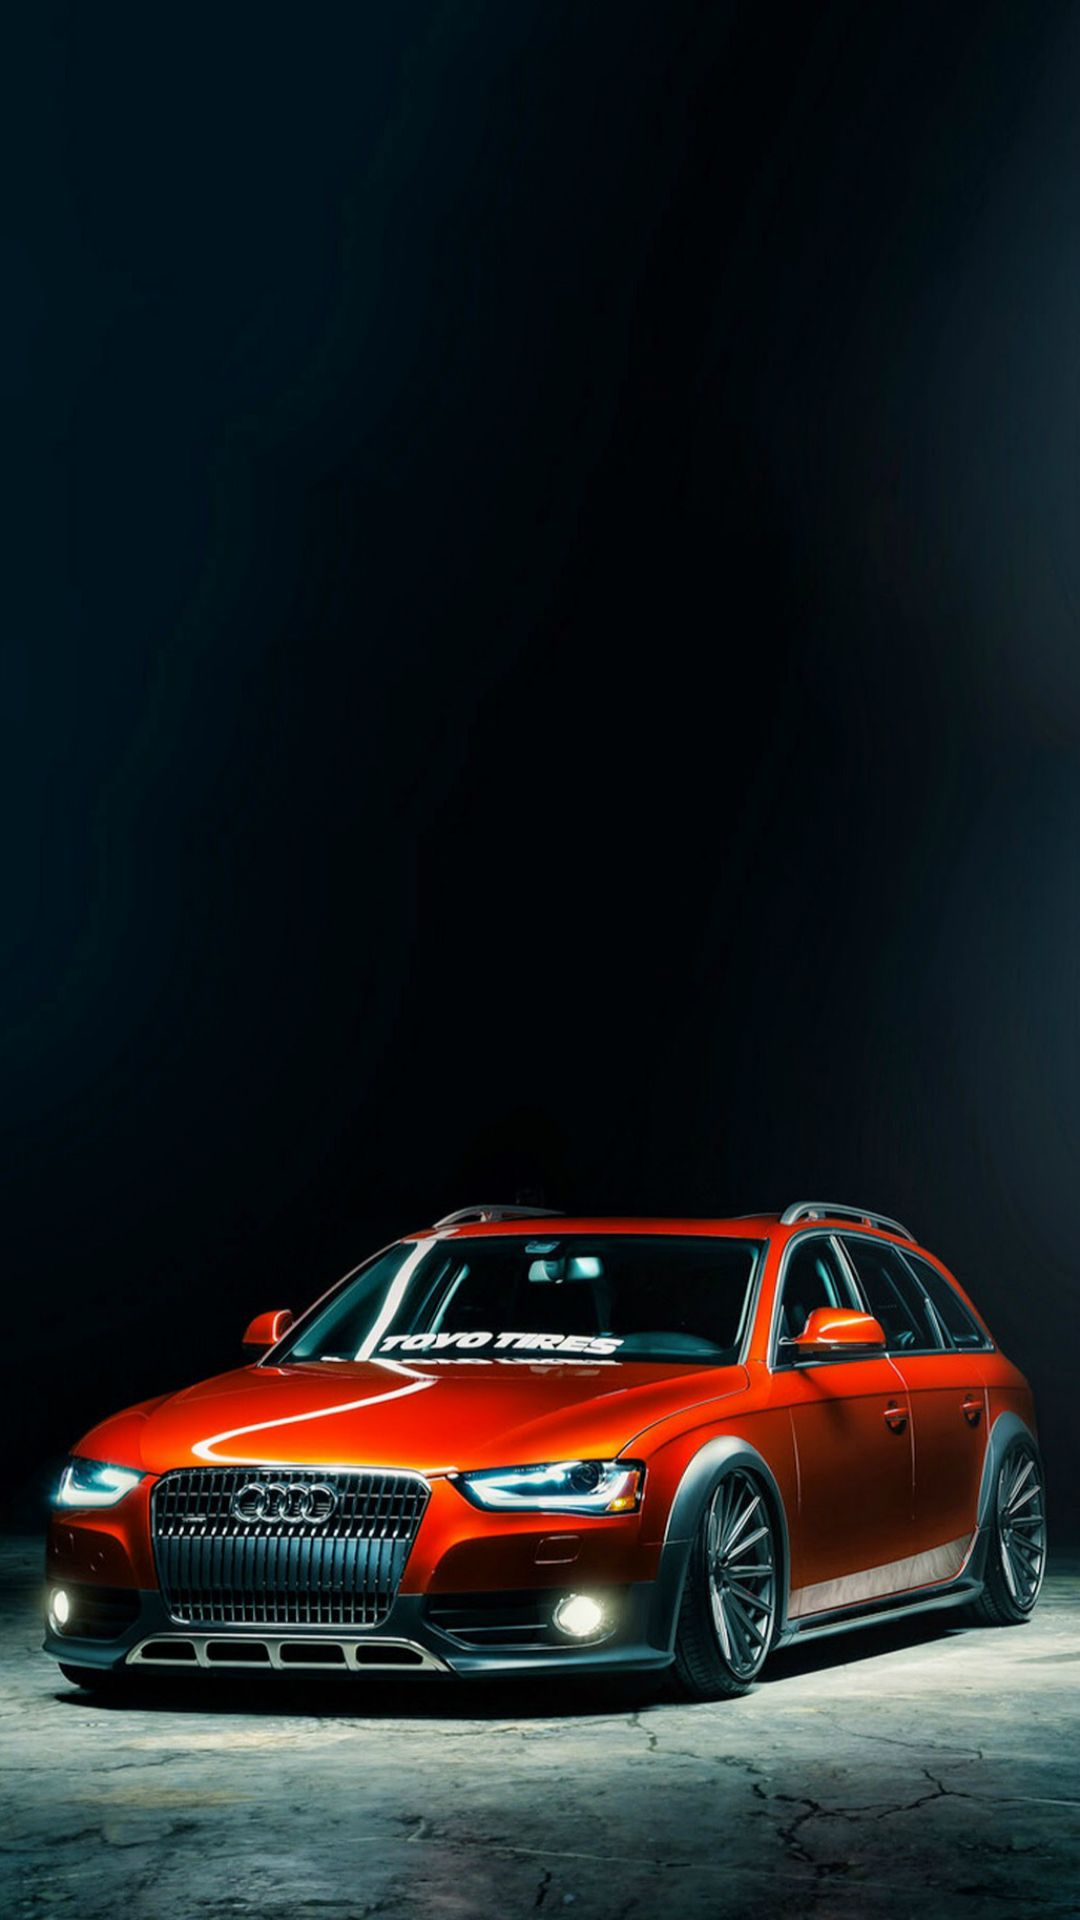 Here's how to make a live wallpaper on iphone and android. Handy Wallpaper 4k Car 1080x1920 Wallpaper Teahub Io